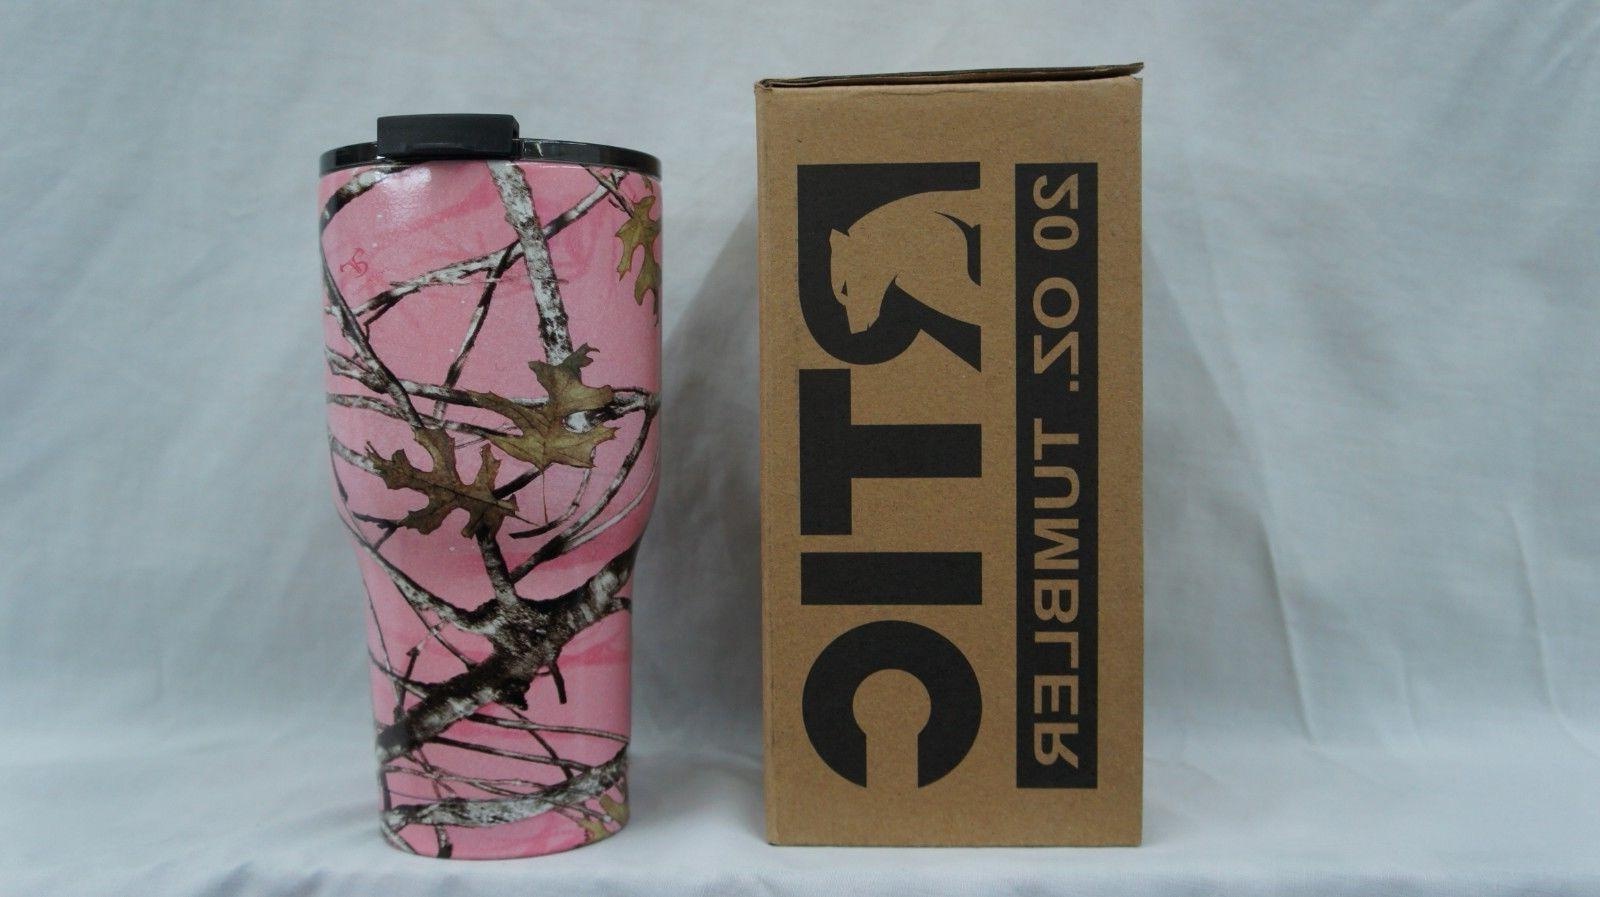 20 oz stainless steel tumbler hydro dipped